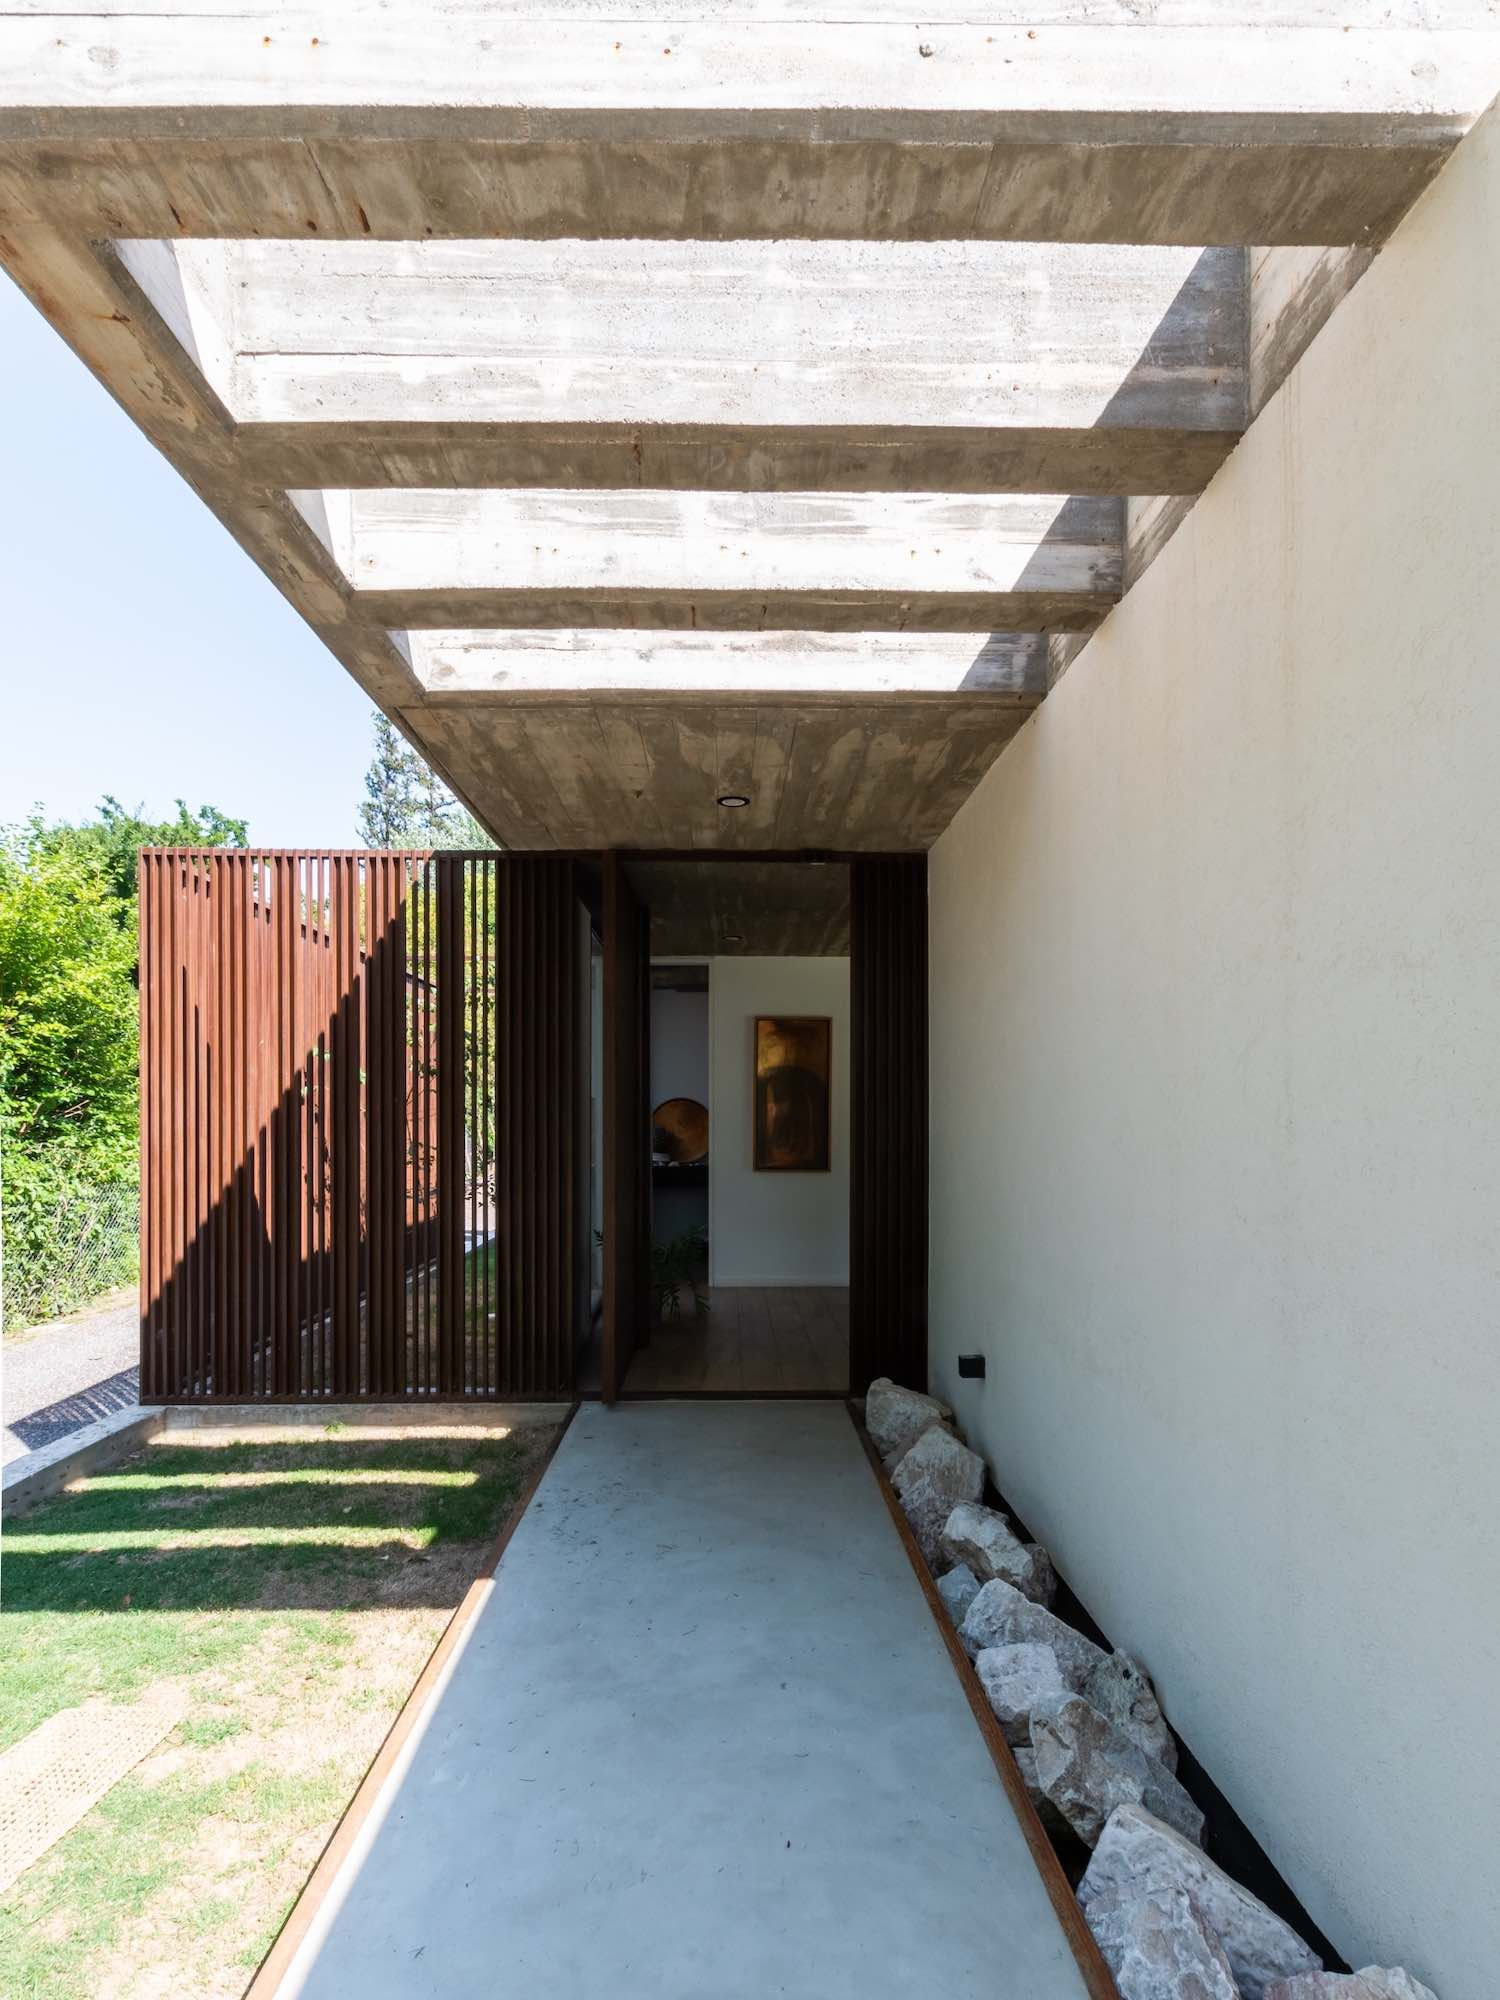 concrete cantilever covering the entrance door